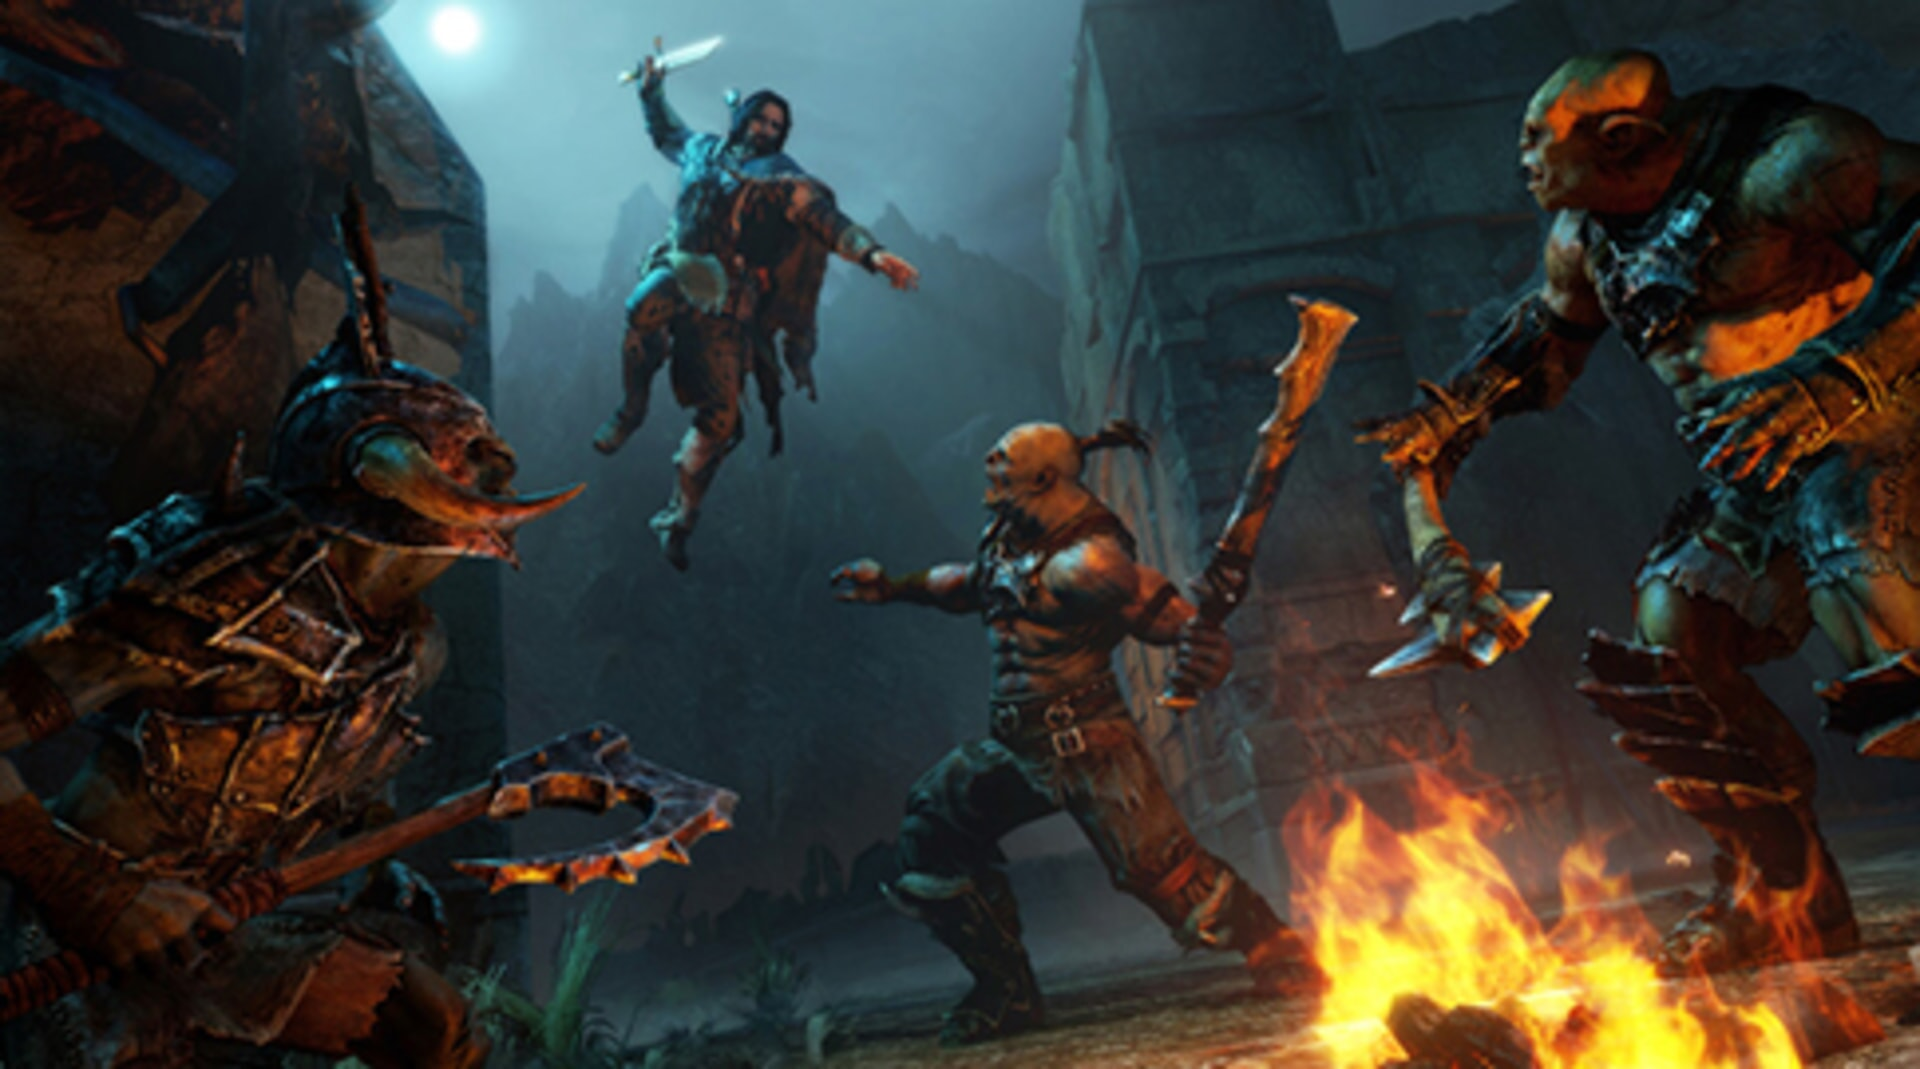 Middle-earth: Shadow of Mordor - Image 4